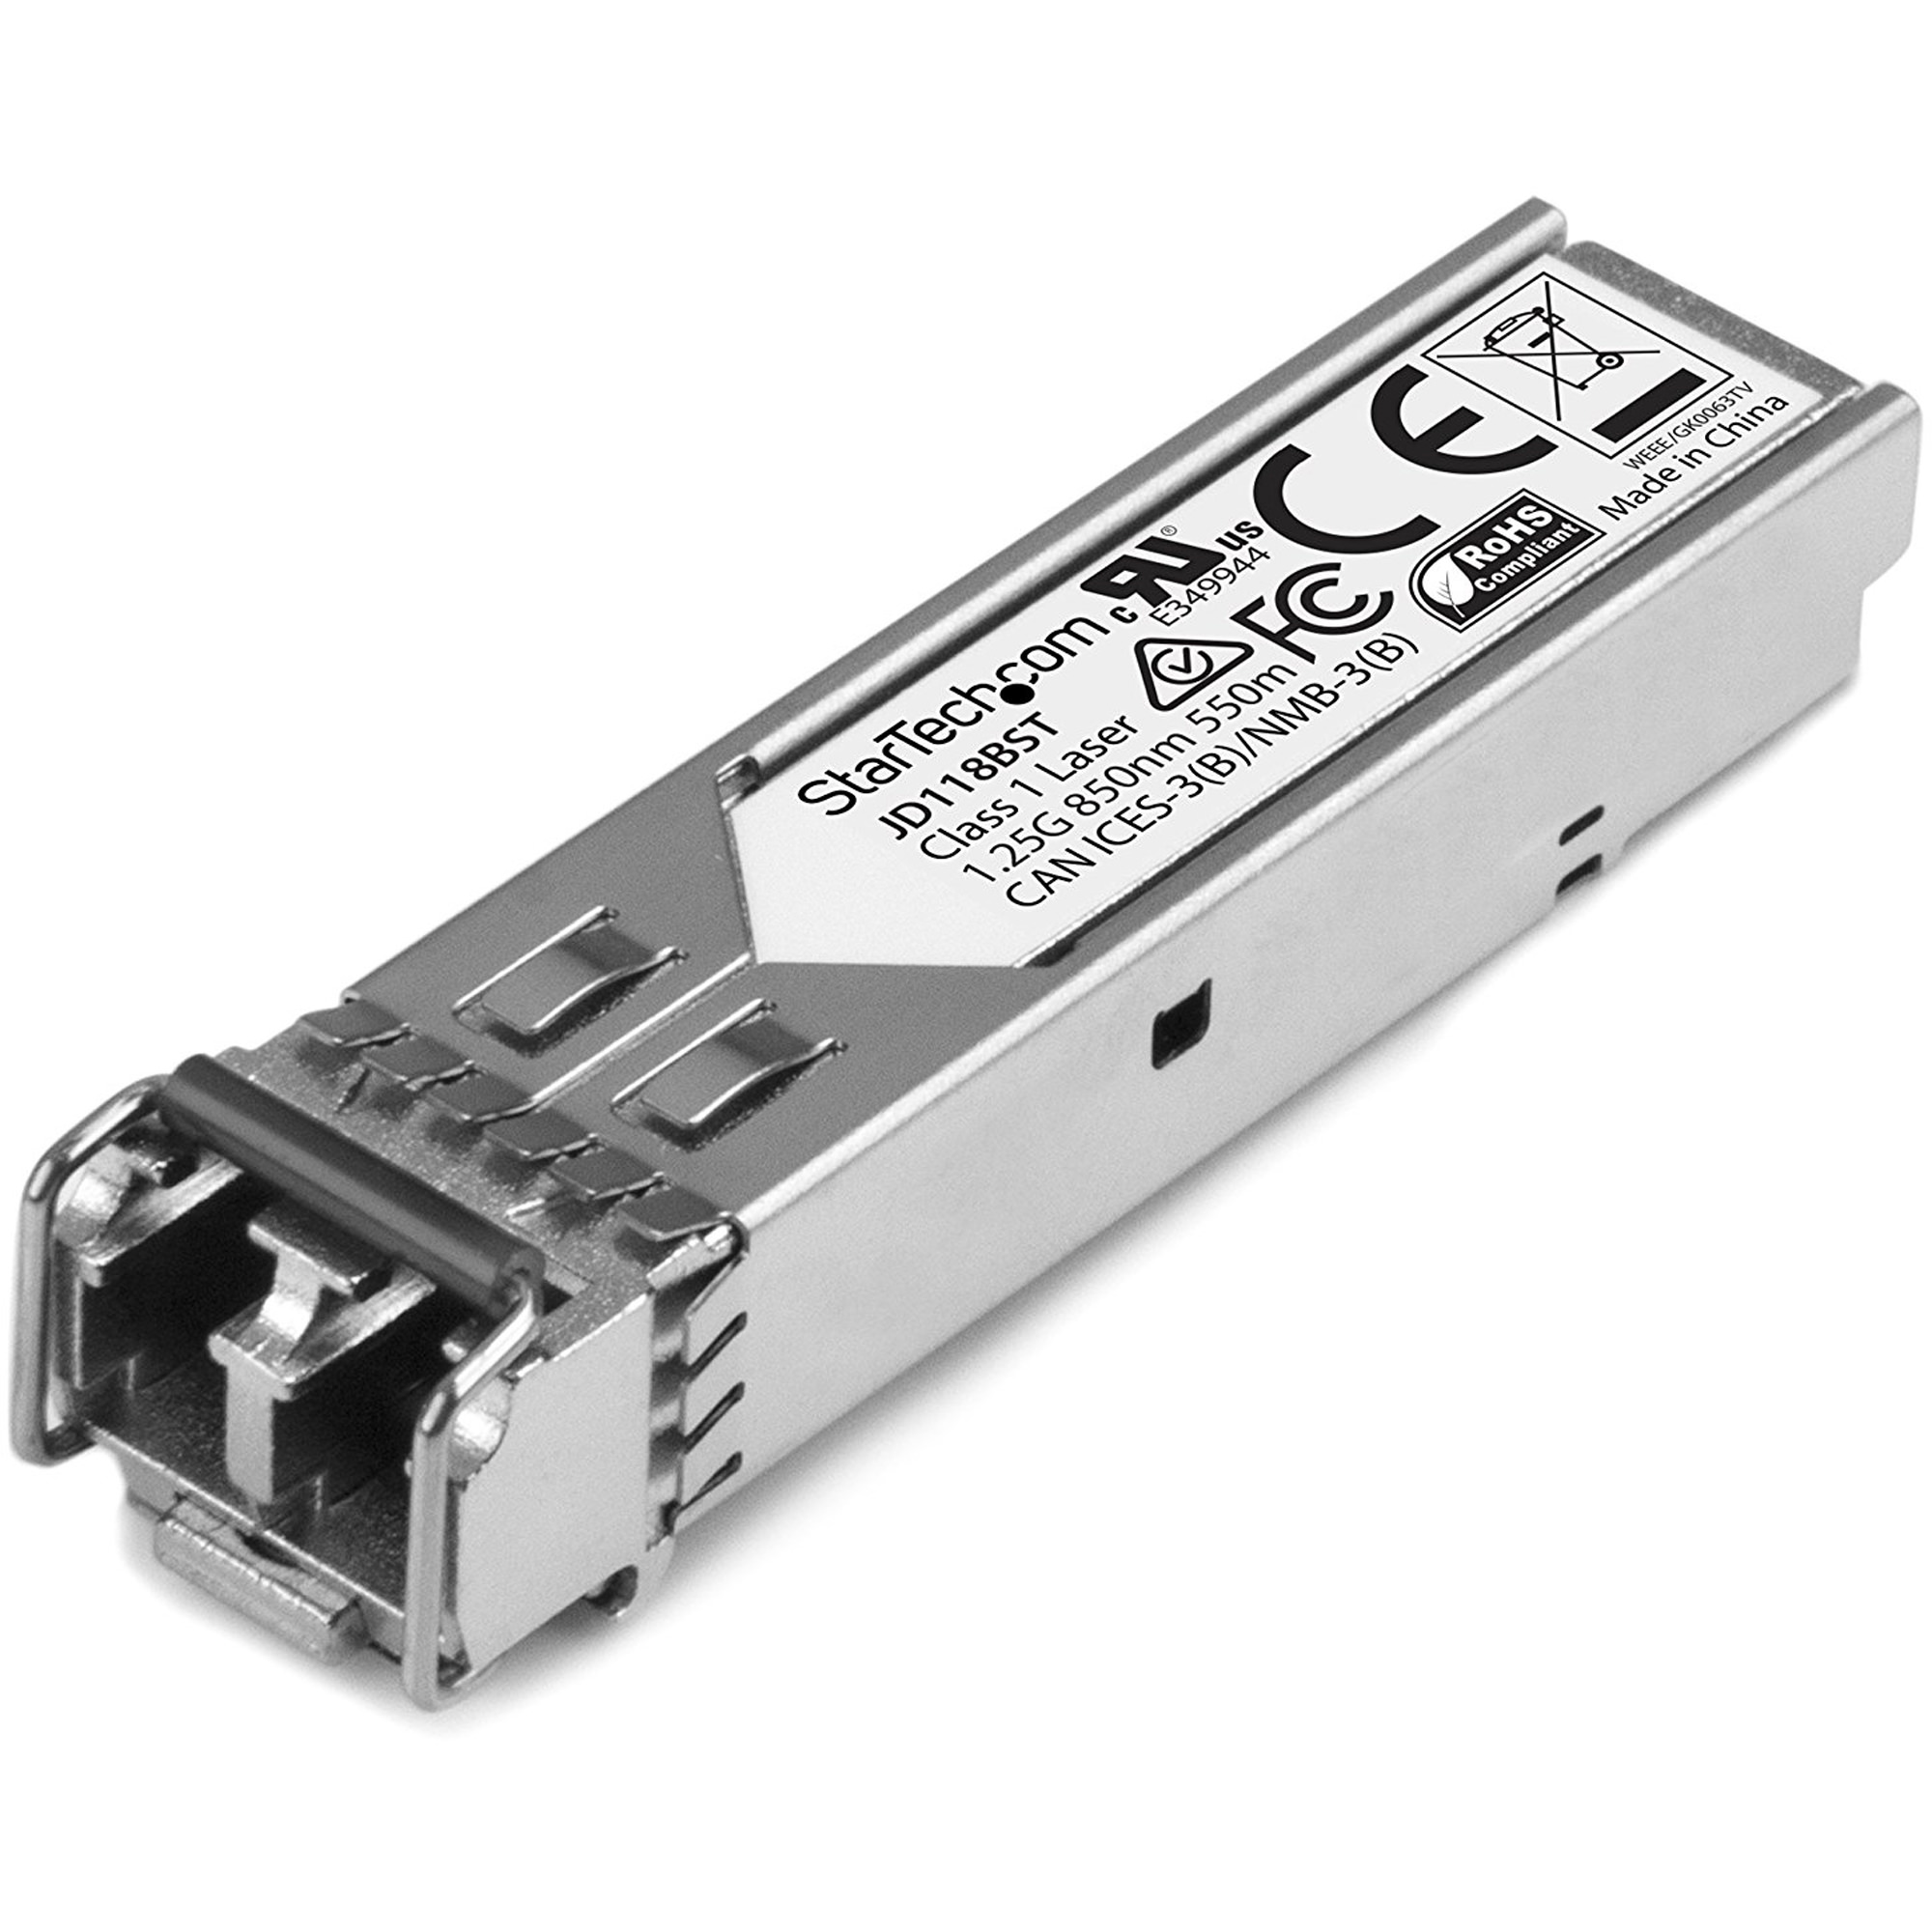 STARTECH Gigabit Fiber 1000Base-SX SFP Transceiver Module - HP JD118B Compatible - MM LC - 550m (1804 ft)